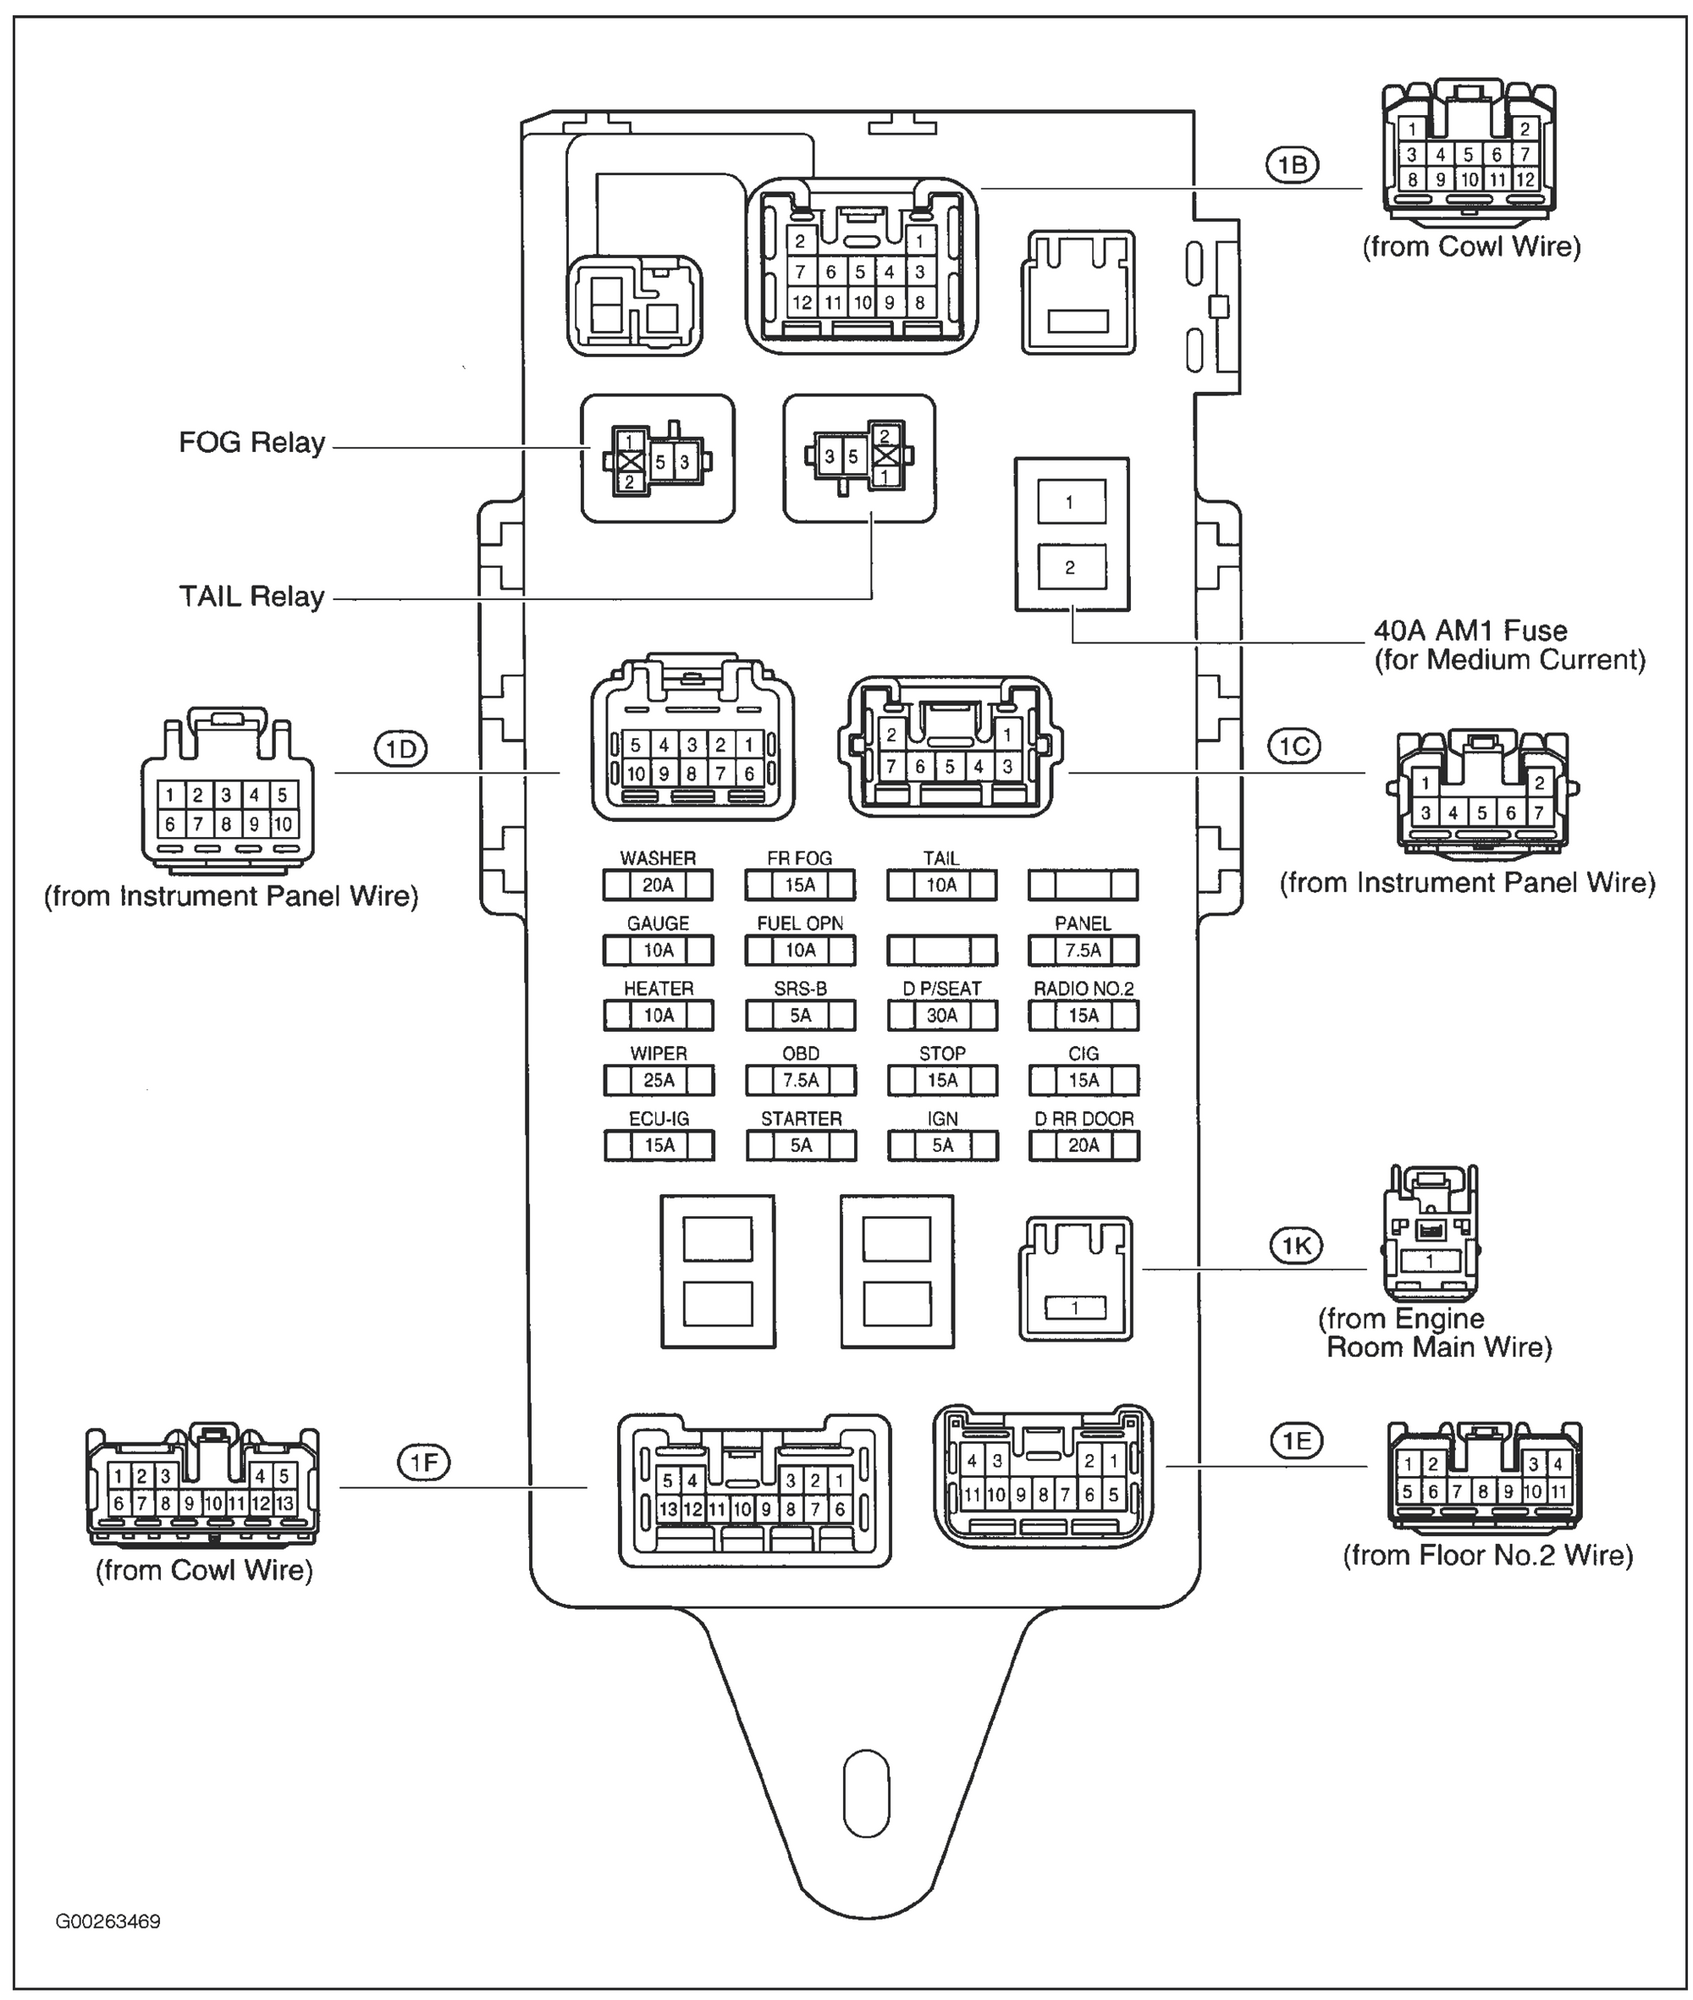 Diagram Together With 2006 Lexus Ls 460 On Fuse Box